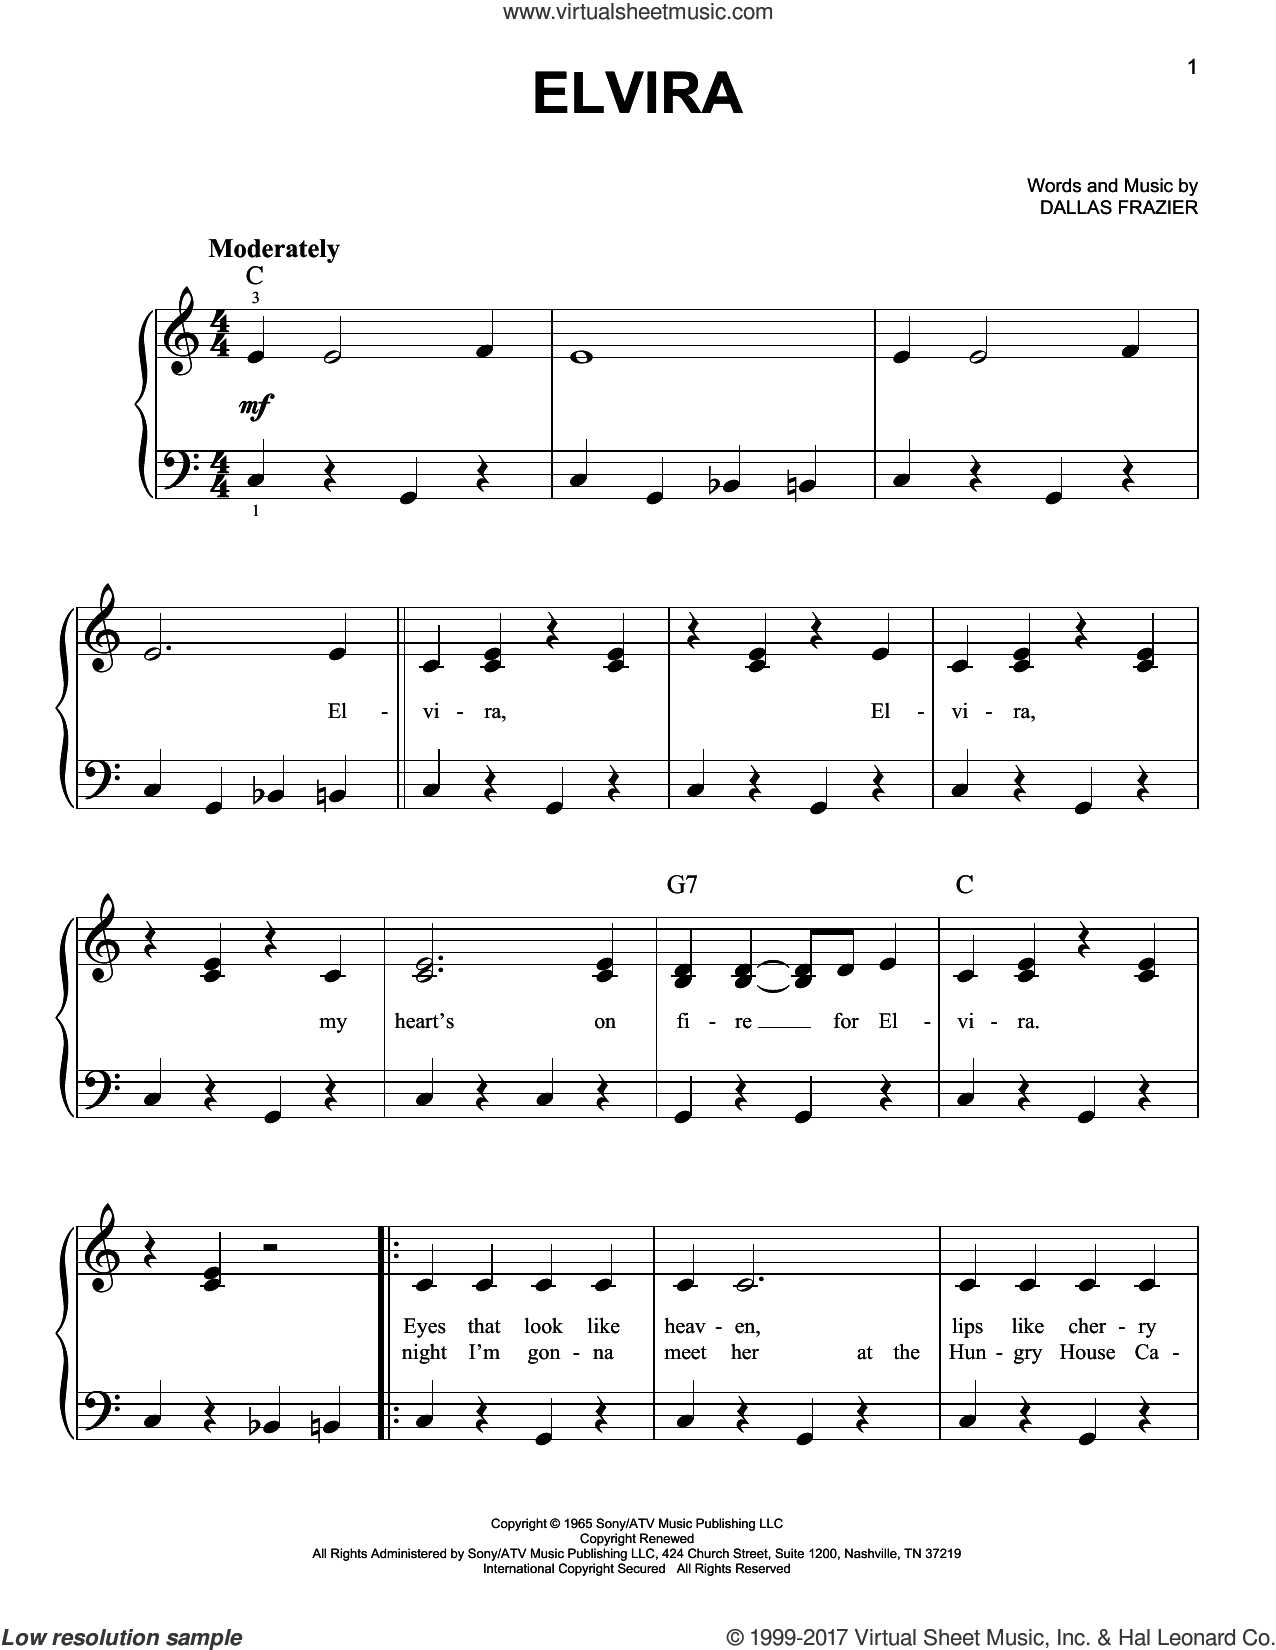 Elvira sheet music for piano solo by Oak Ridge Boys and Dallas Frazier, easy skill level